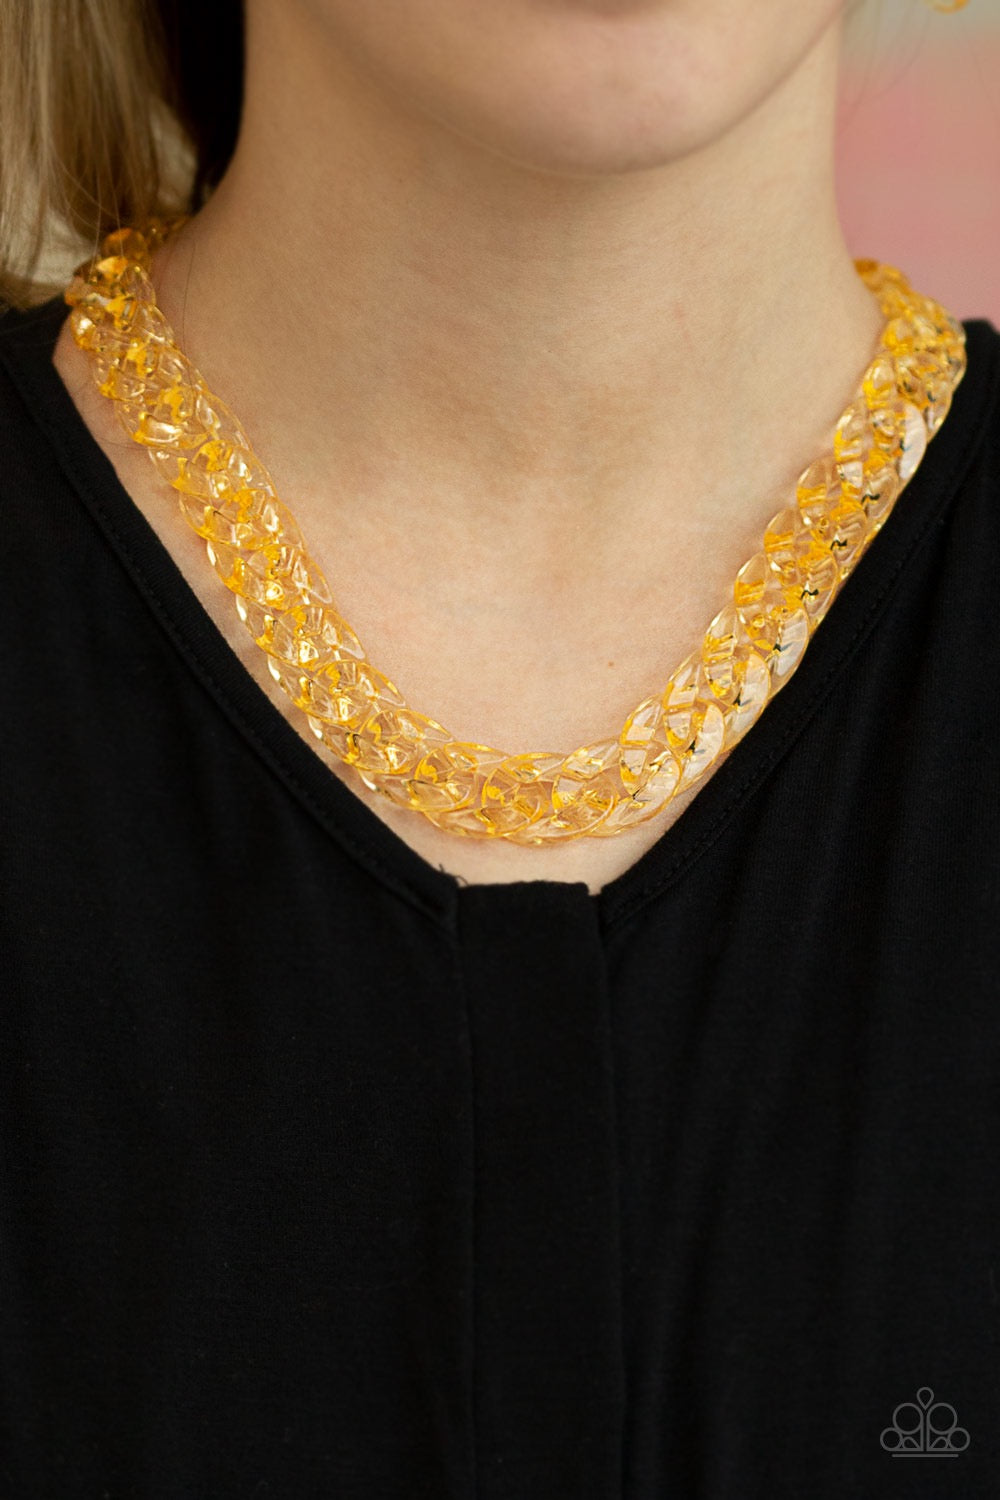 Put It On Ice - Gold Necklace 11n